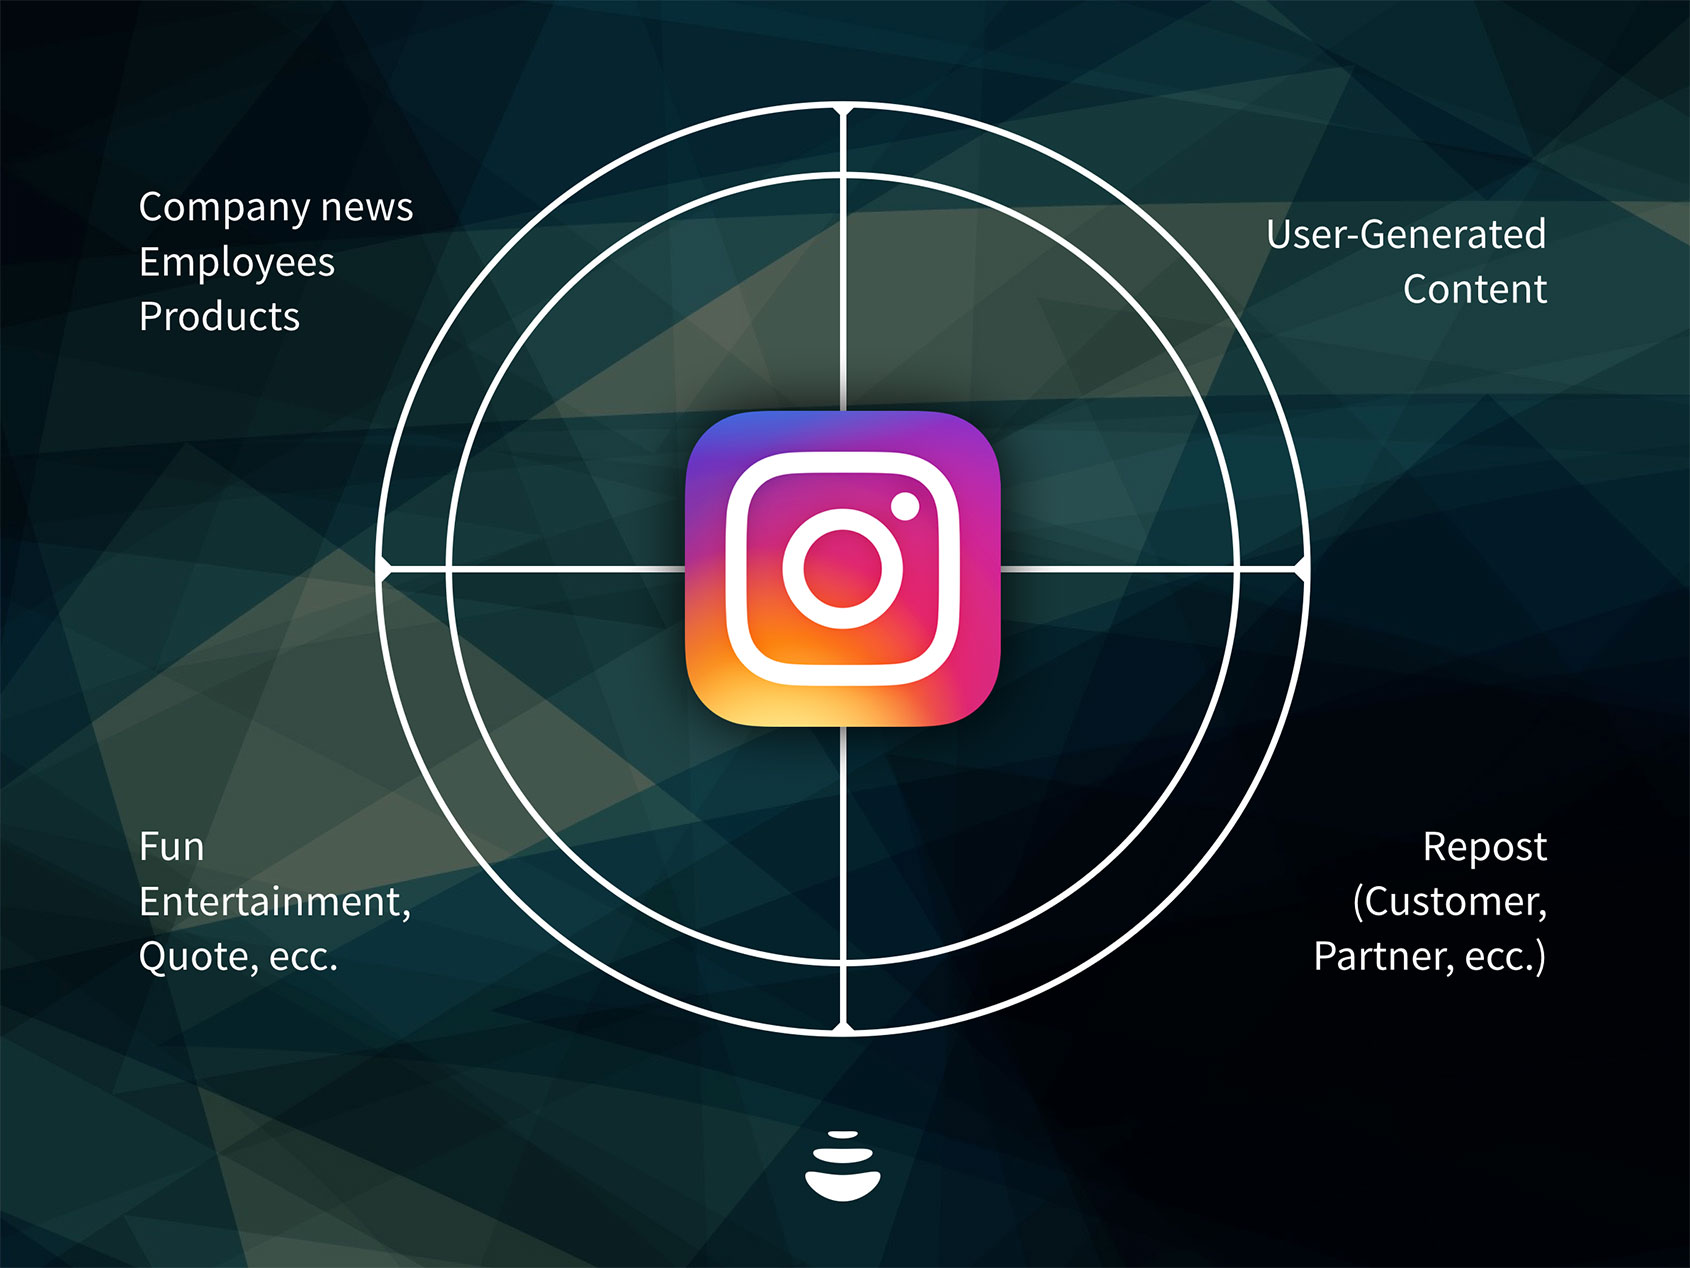 brand-instagram-marketing-04.jpg